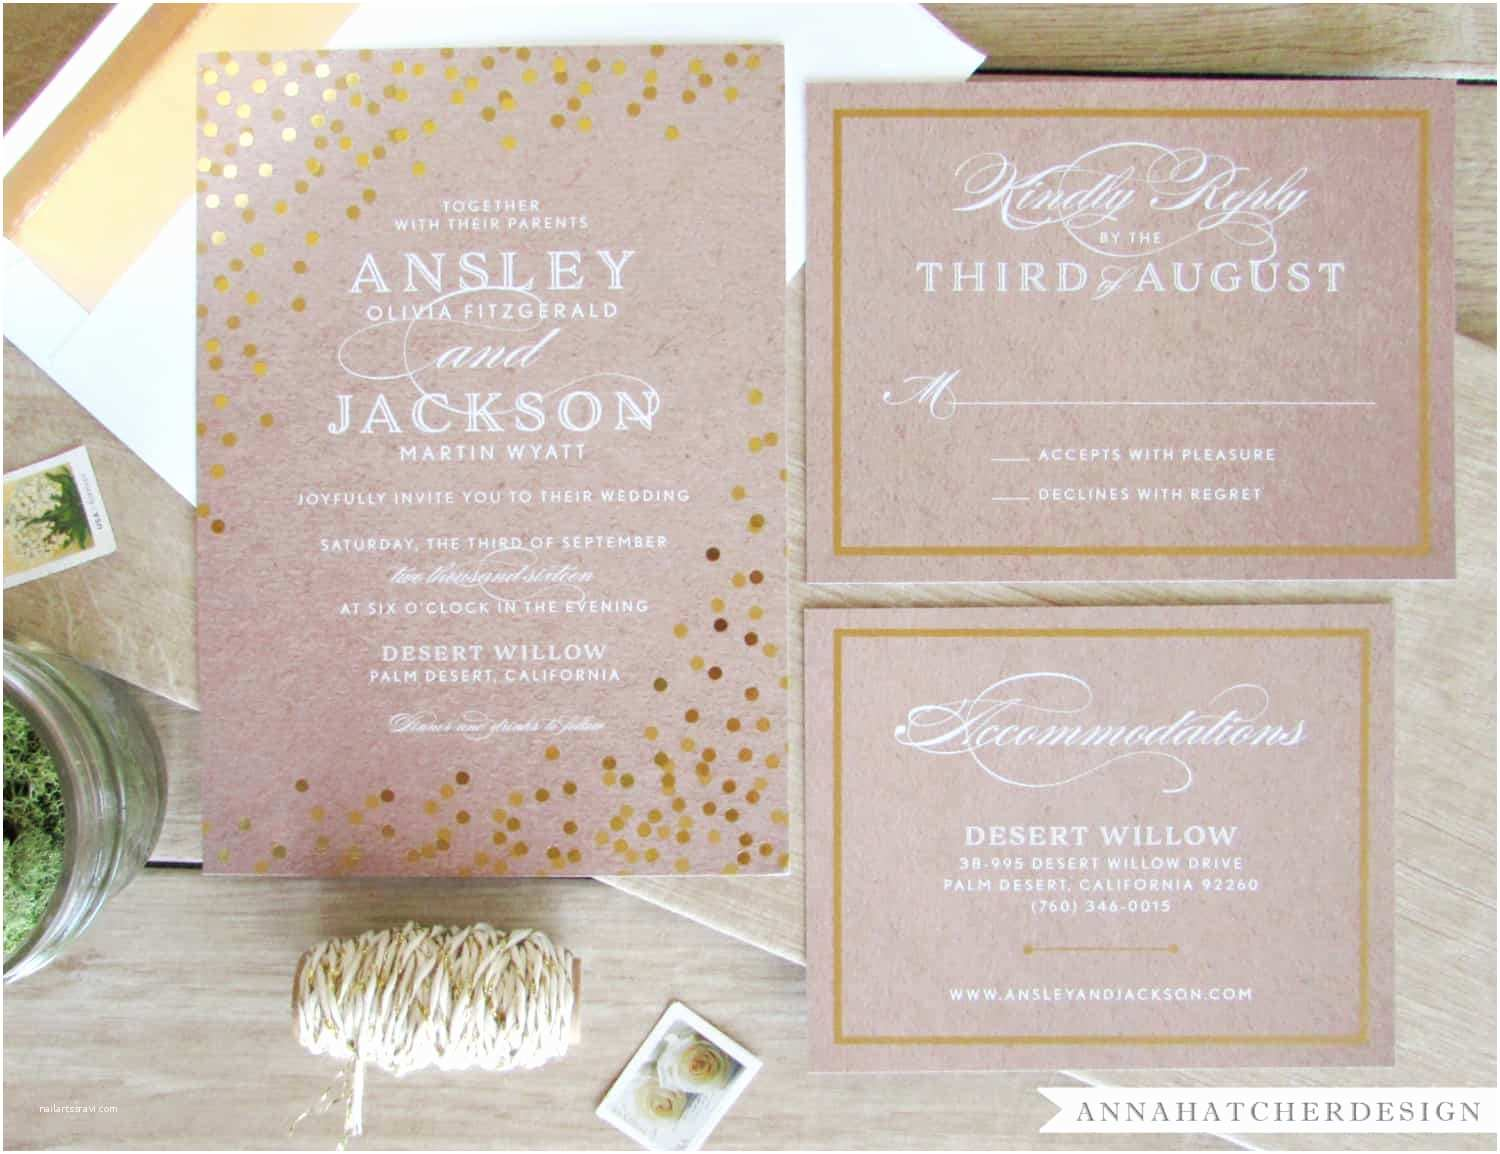 Foil Pressed Wedding Invitations Create Own Foil Pressed Wedding Invitations Templates